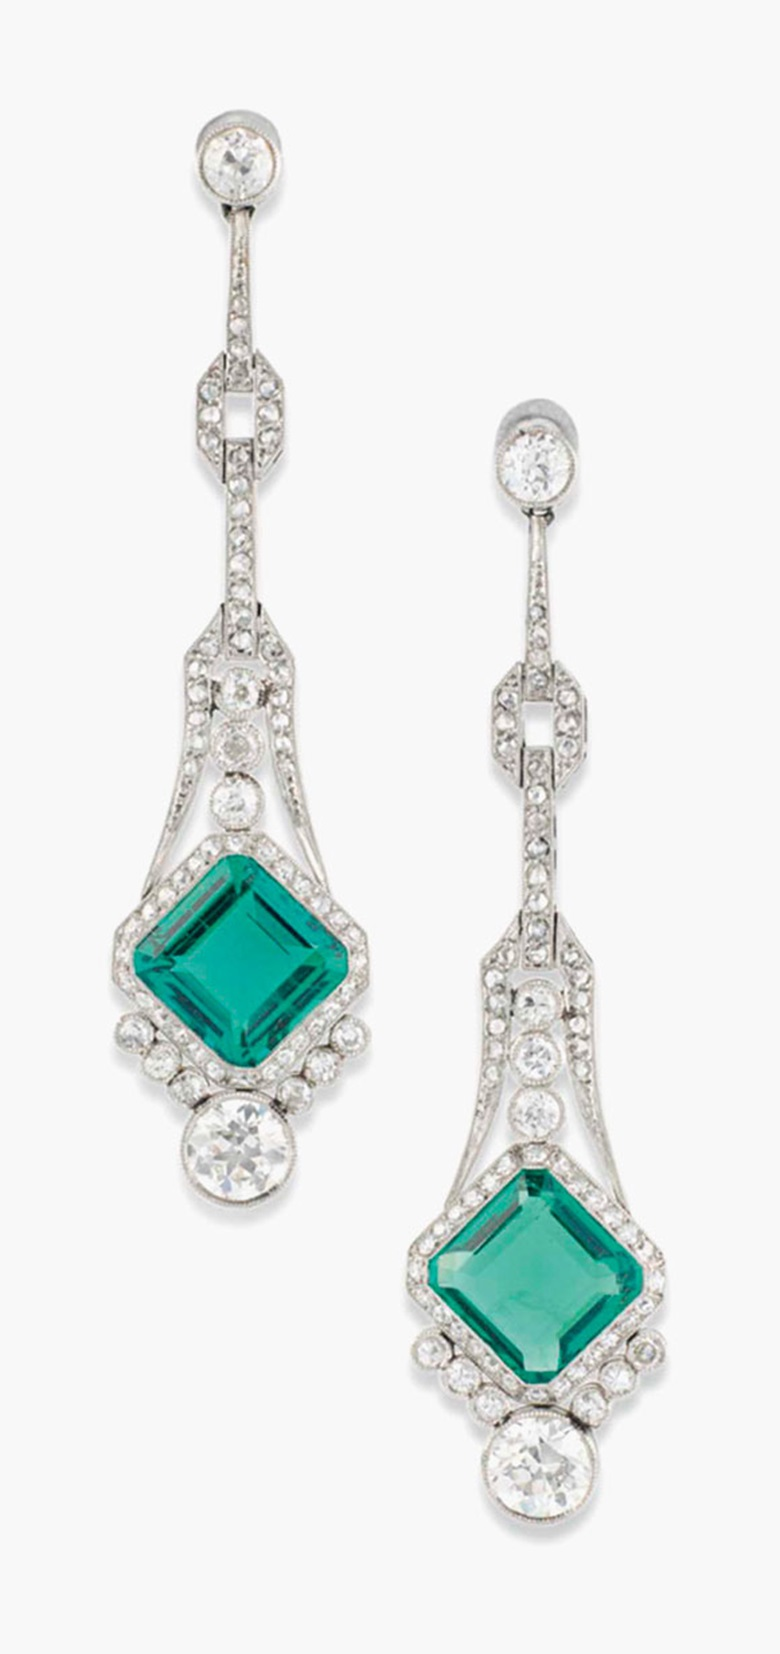 A pair of Art Deco emerald and diamond ear pendants. Estimate £15,000-20,000. This lot is offered in Important Jewels on 30 November 2016 at Christie's in London, King Street